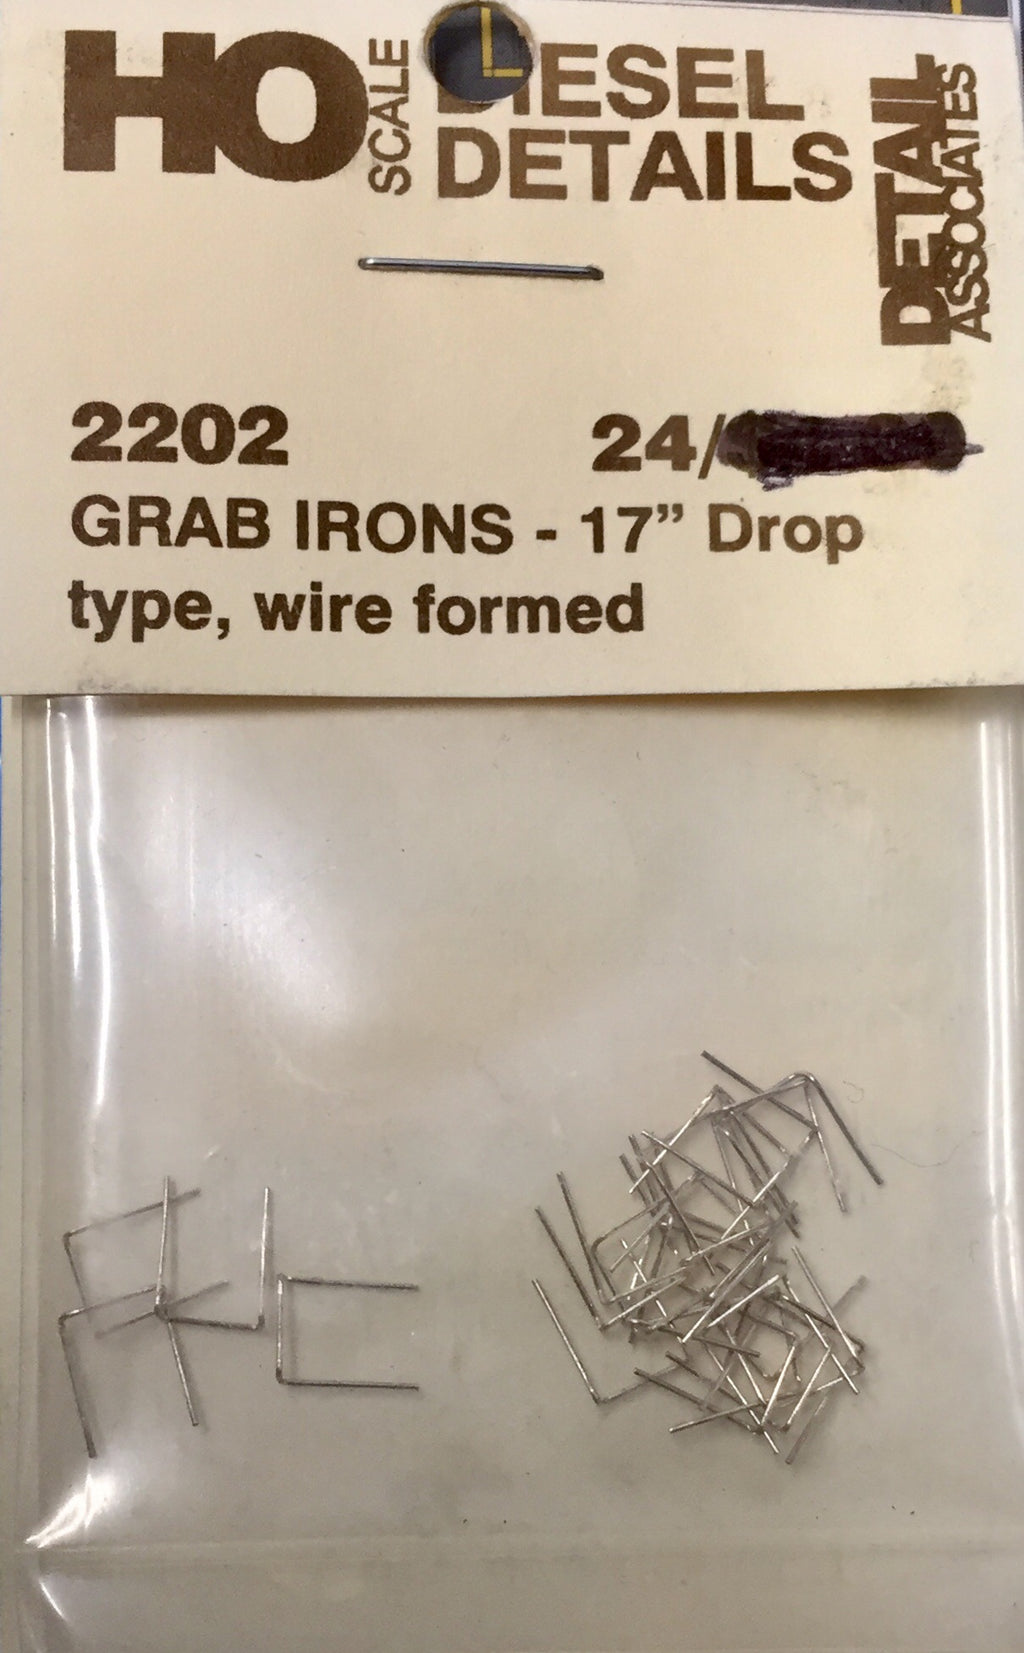 "DETAIL ASS - 2202 - GRAB IRON 17"" Drop type, wire formed  (end of run stock)"